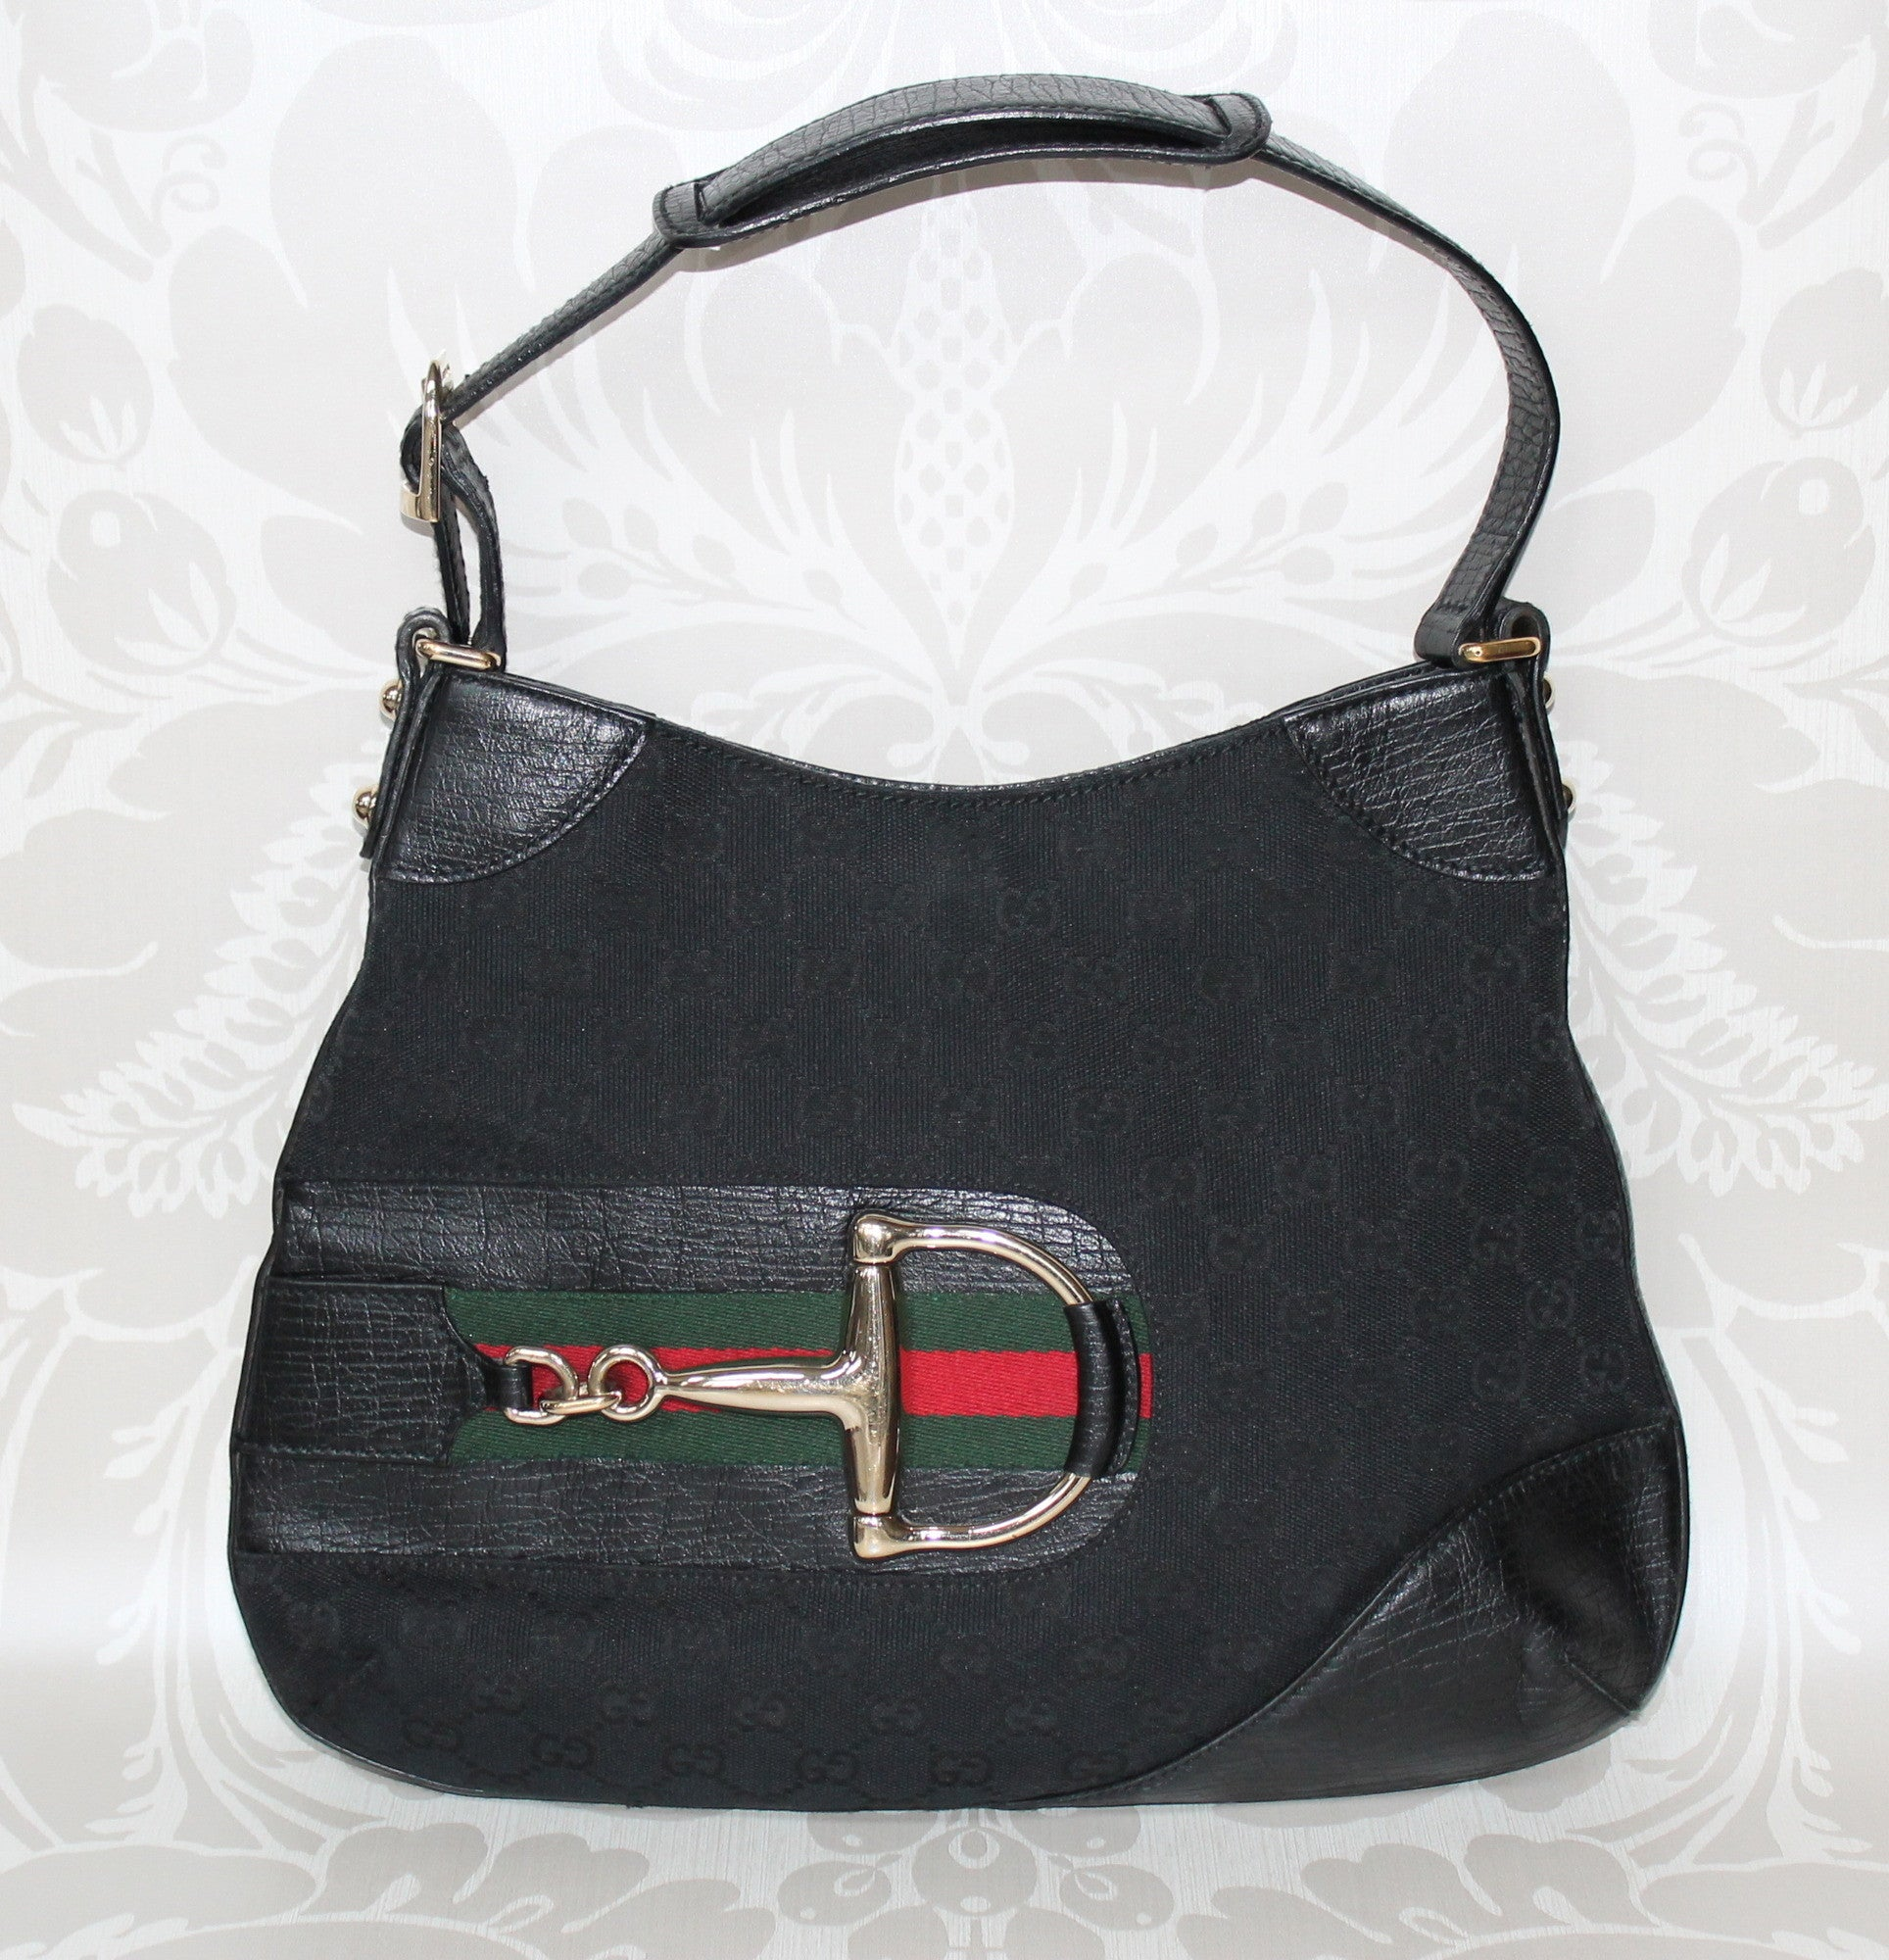 Authentic GUCCI Hasler Black Canvas Handbag